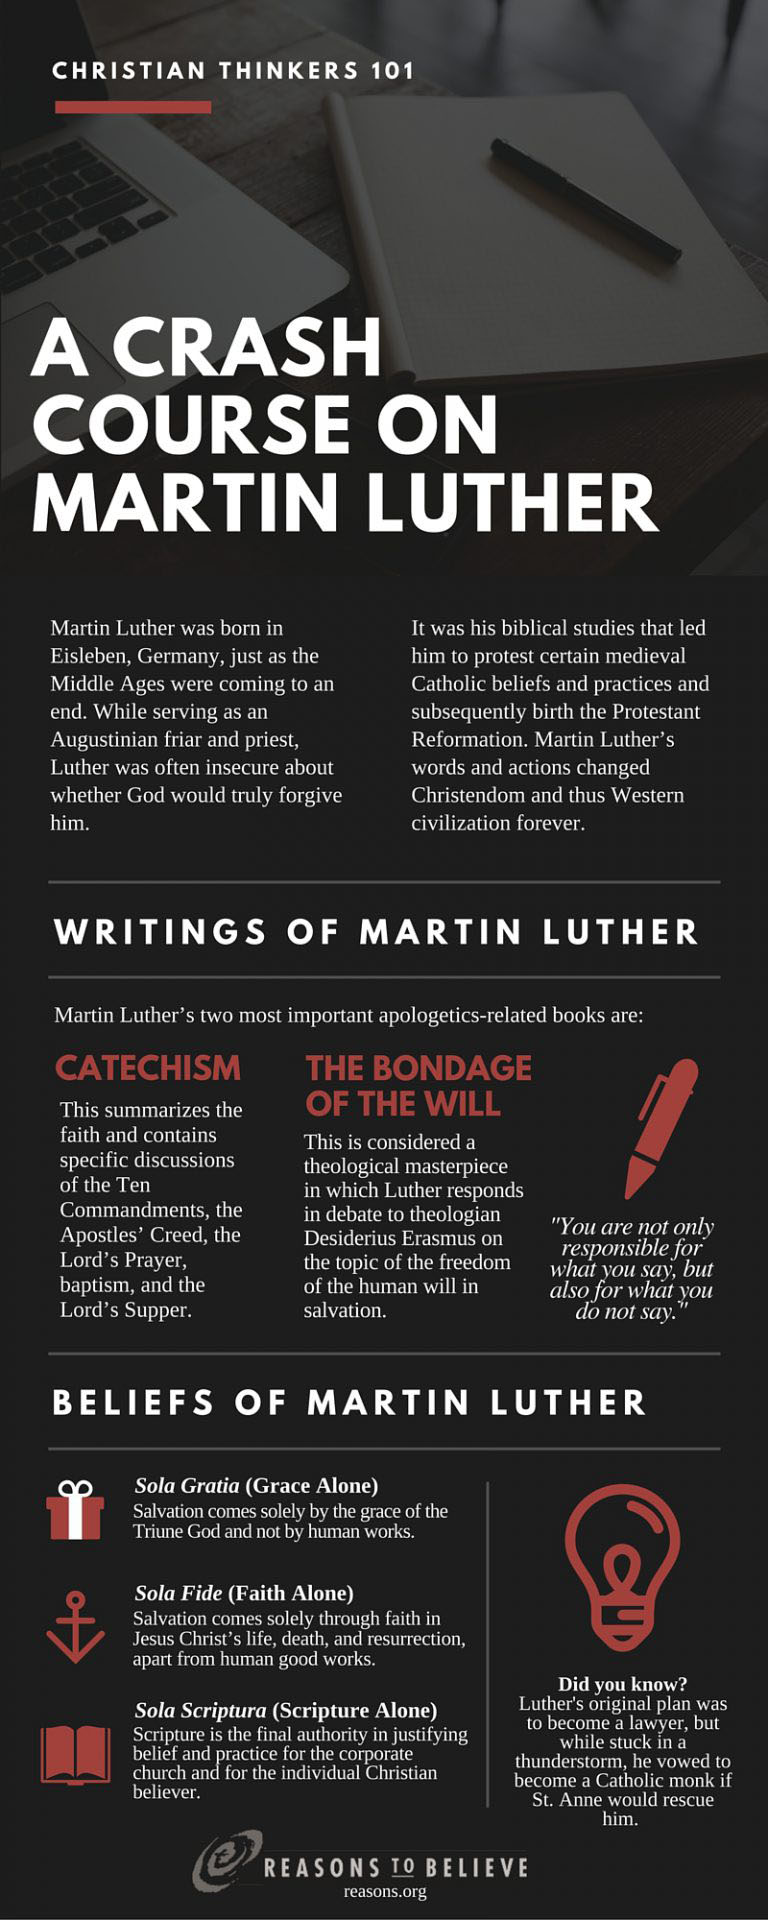 blog__inline--christian-thinkers-101-a-crash-course-on-martin-luther